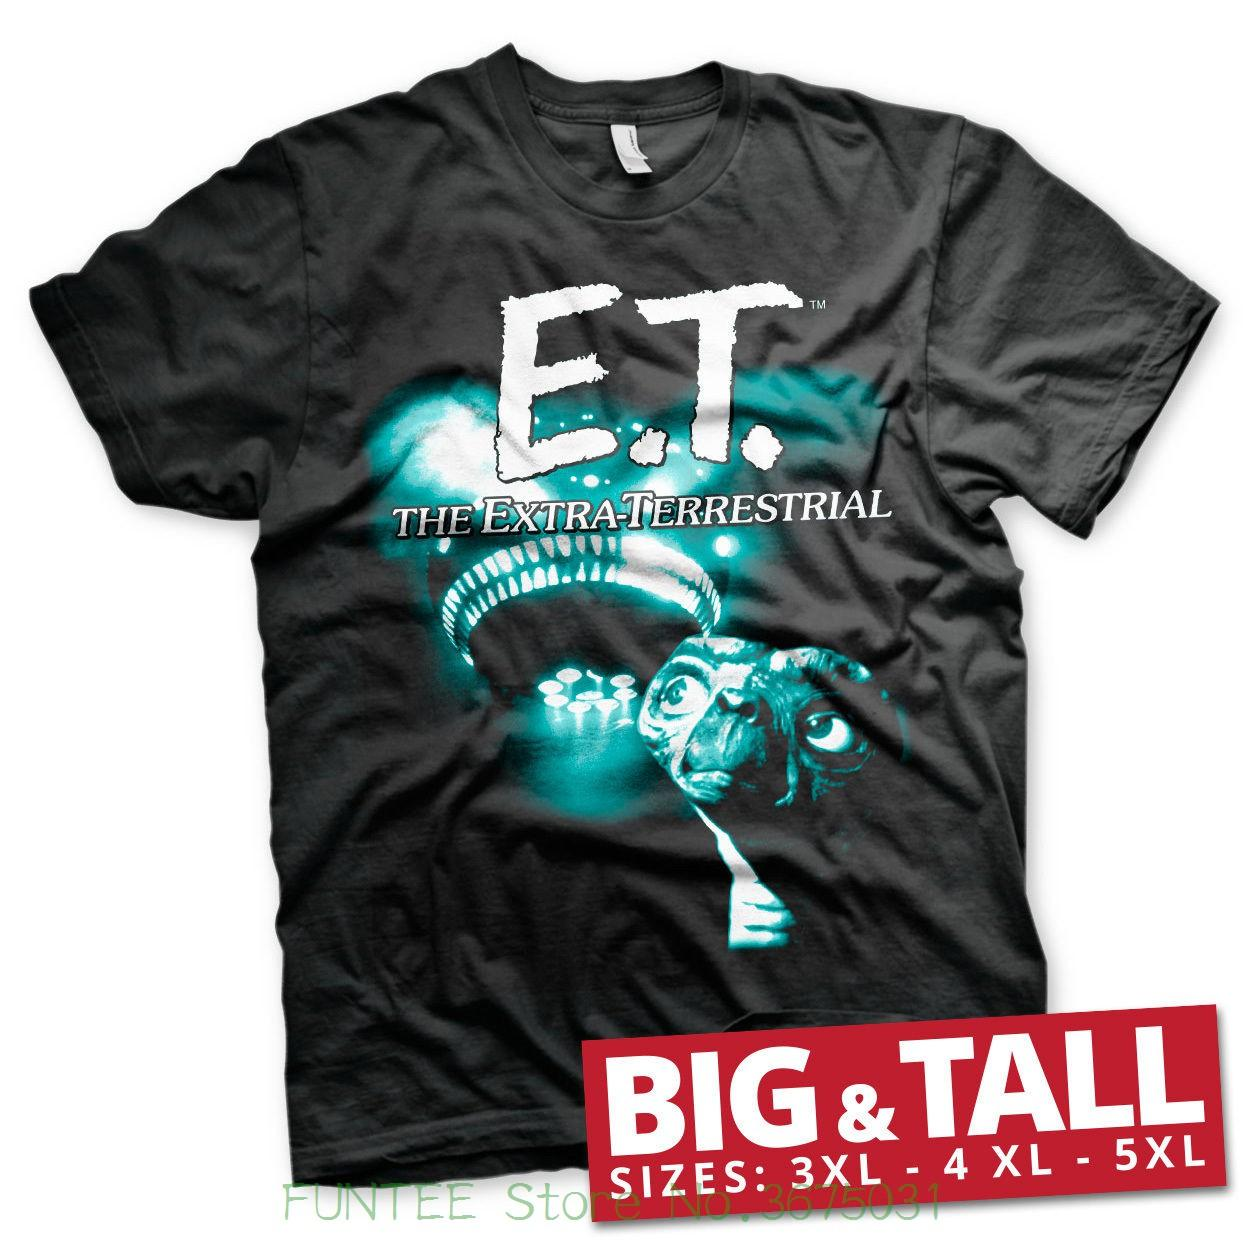 1e579f4123f T Shirts Man Clothing Officially Licensed E.T. Duotone Big   Tall 3xl